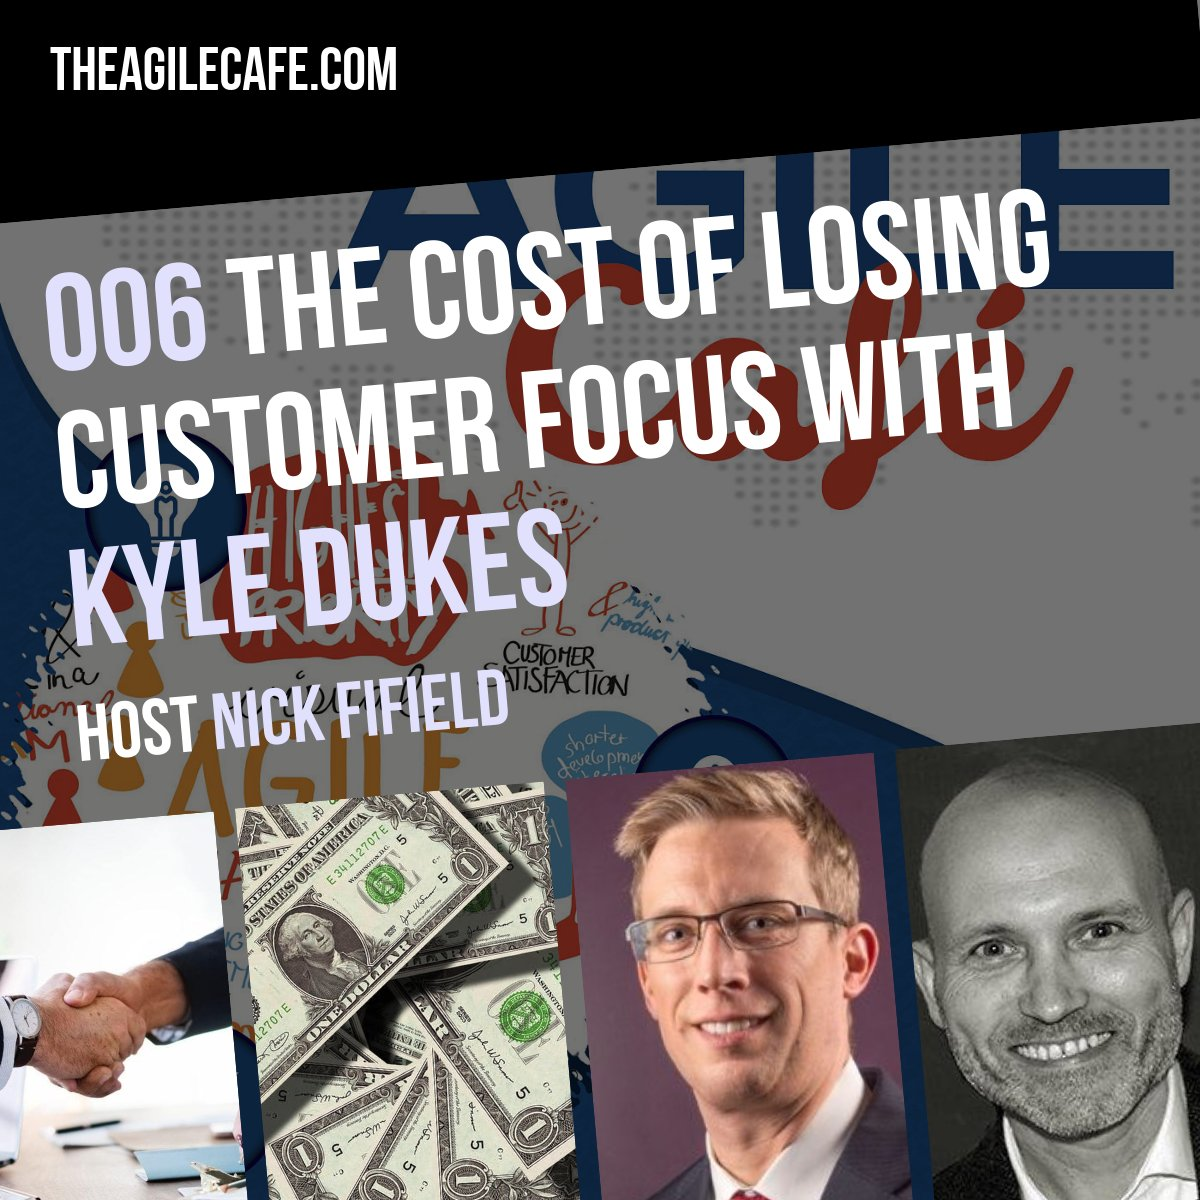 006 The Cost Of Losing Customer Focus with Kyle Dukes